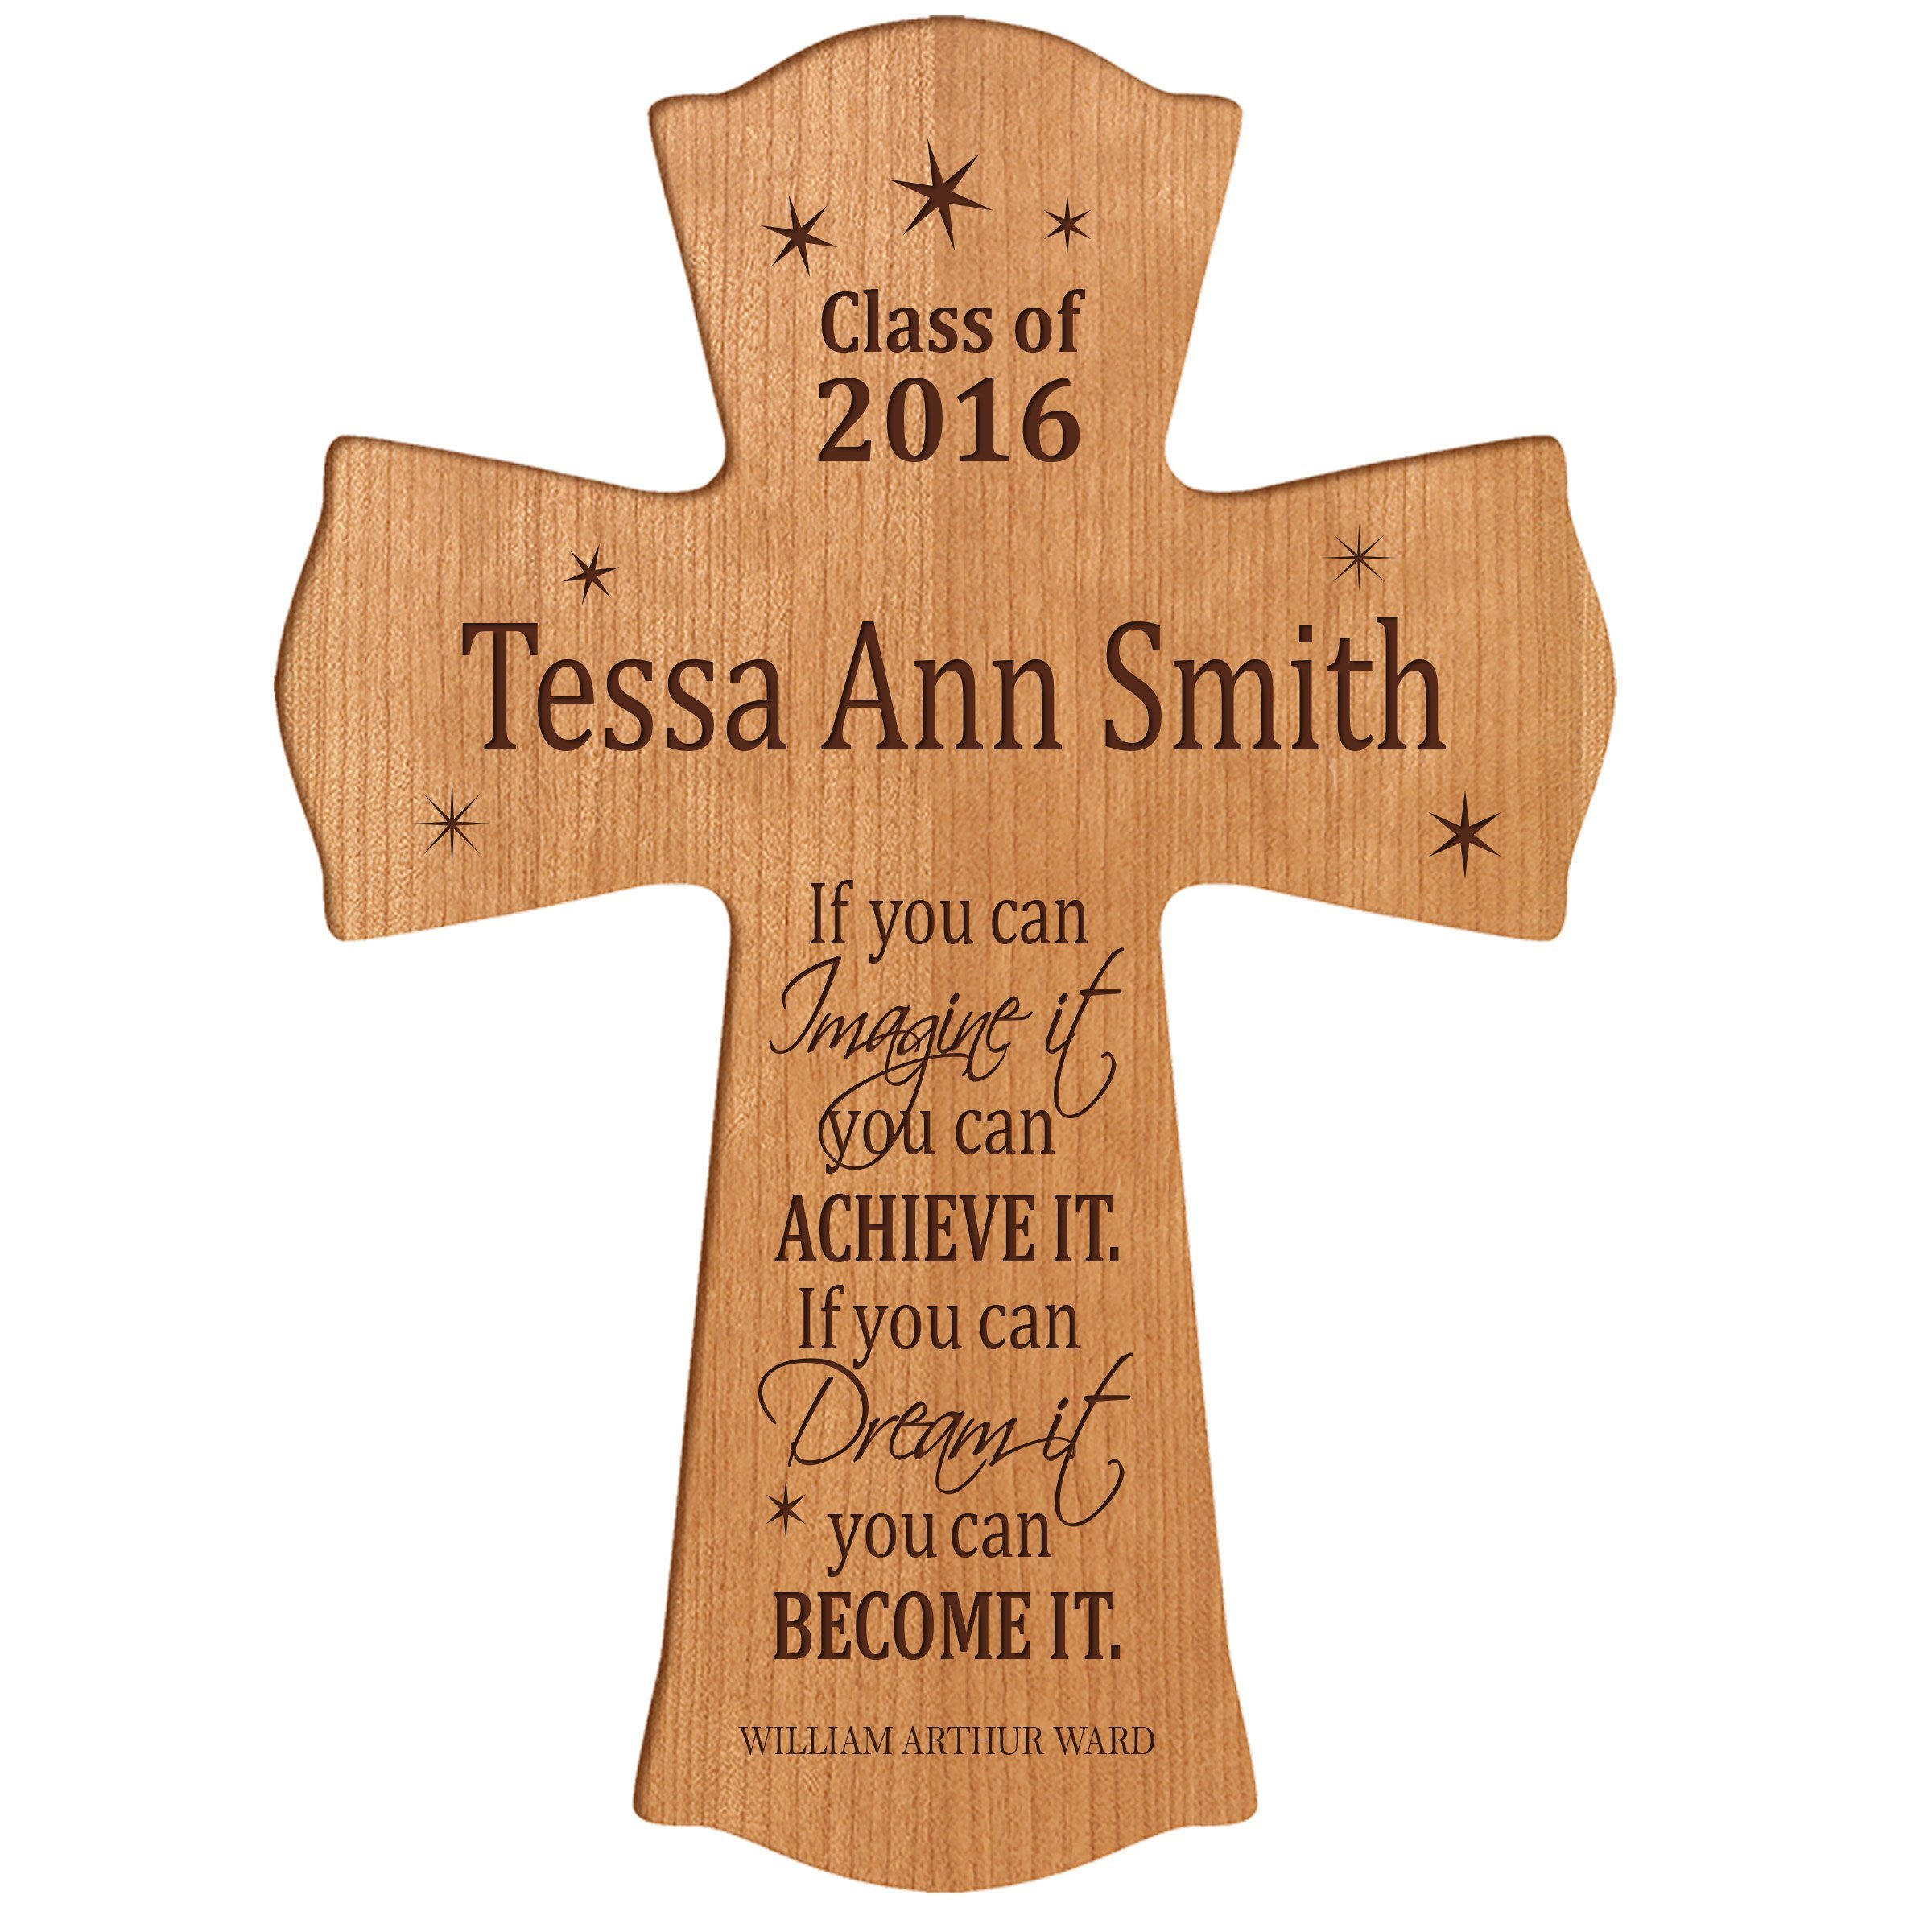 LifeSong Milestones Personalized Wall Cross Graduation gifts for If you can IMAGINE it you can ACHIEVE IT if you can Dream it you can BECOME IT (8.5'' x 11'', Cherry)